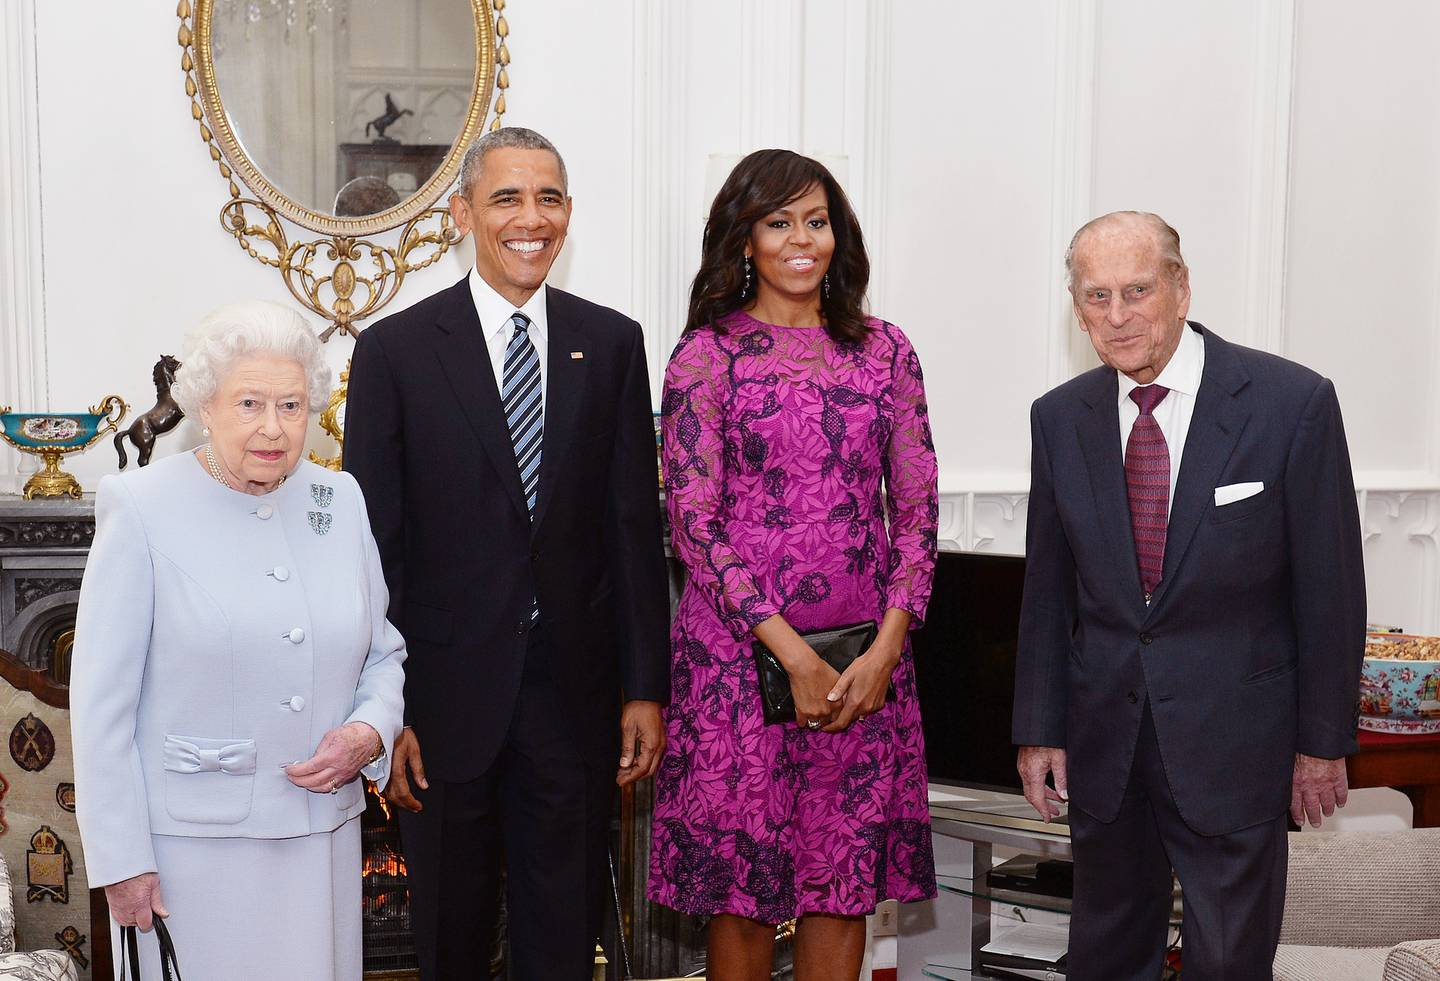 Queen Elizabeth II (L) and Prince Philip, Duke of Edinburgh (R) hosted Barack Obama and Michelle Obama for several days in 2011. Photo / Getty Images